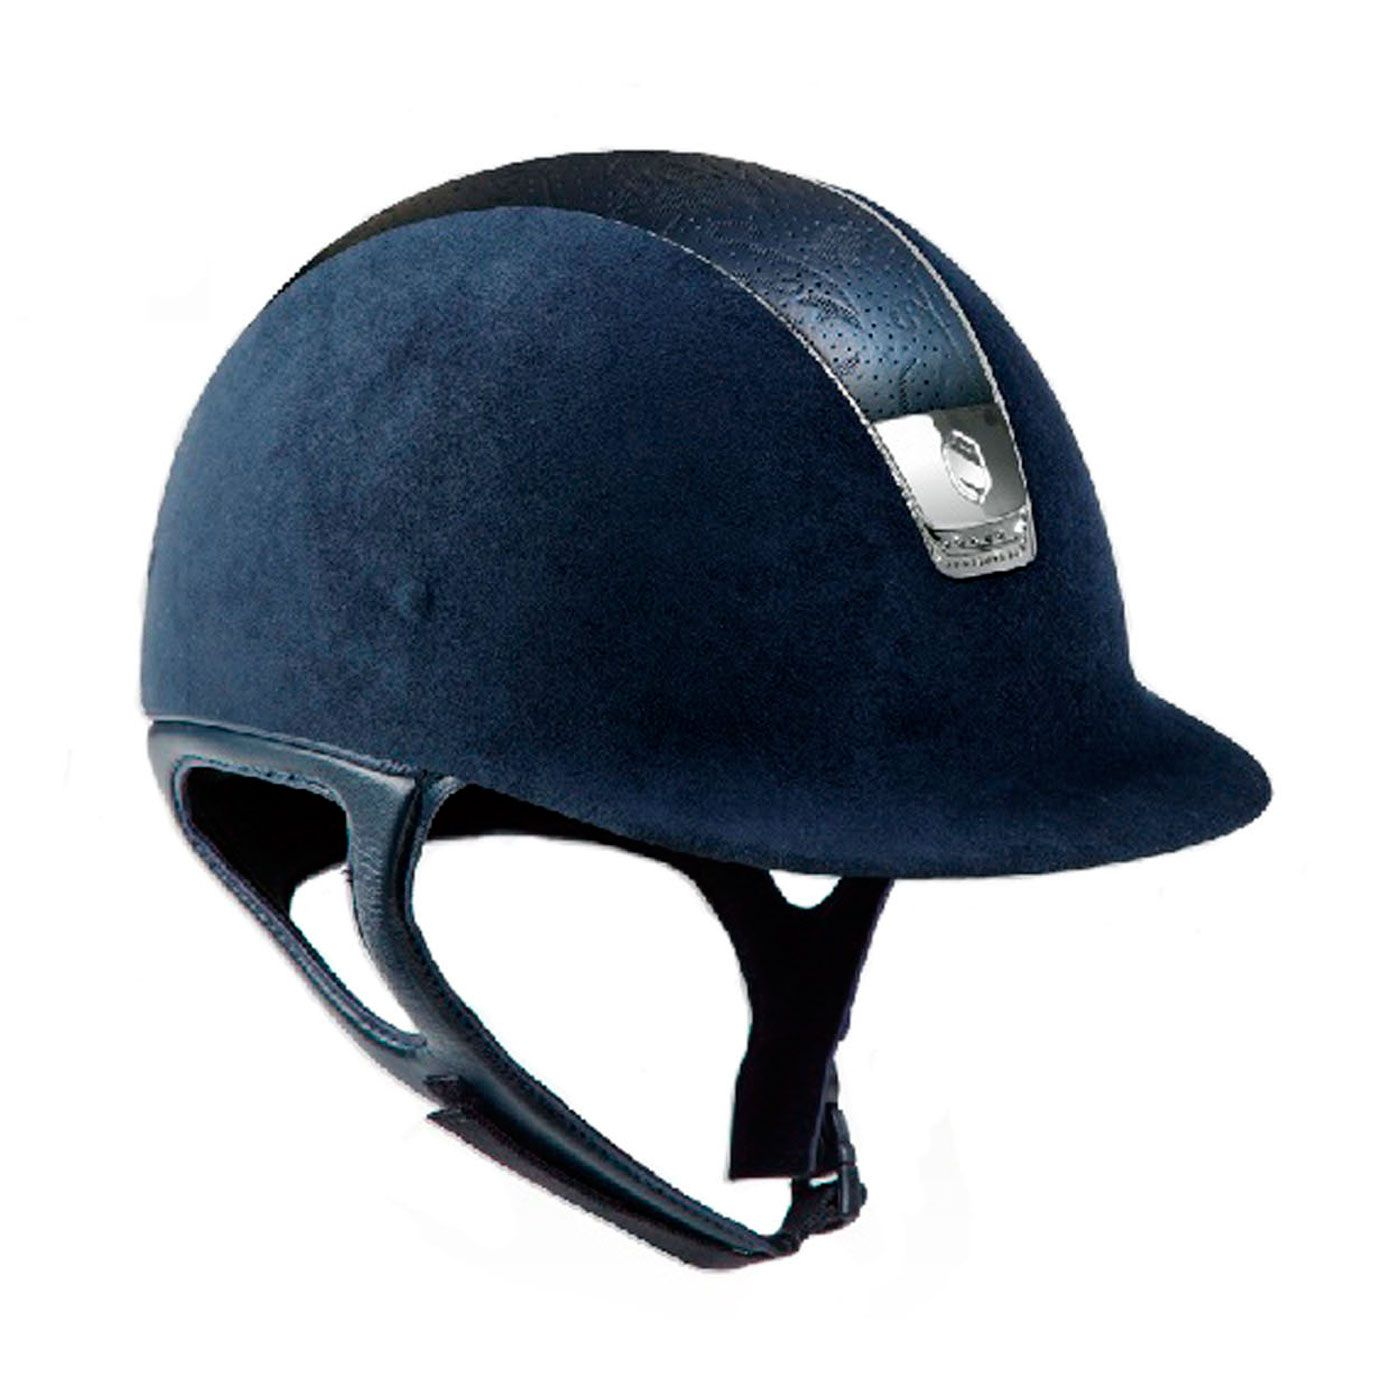 Horse Riding Hats Gt Navy Riding Hat With Flower Leather